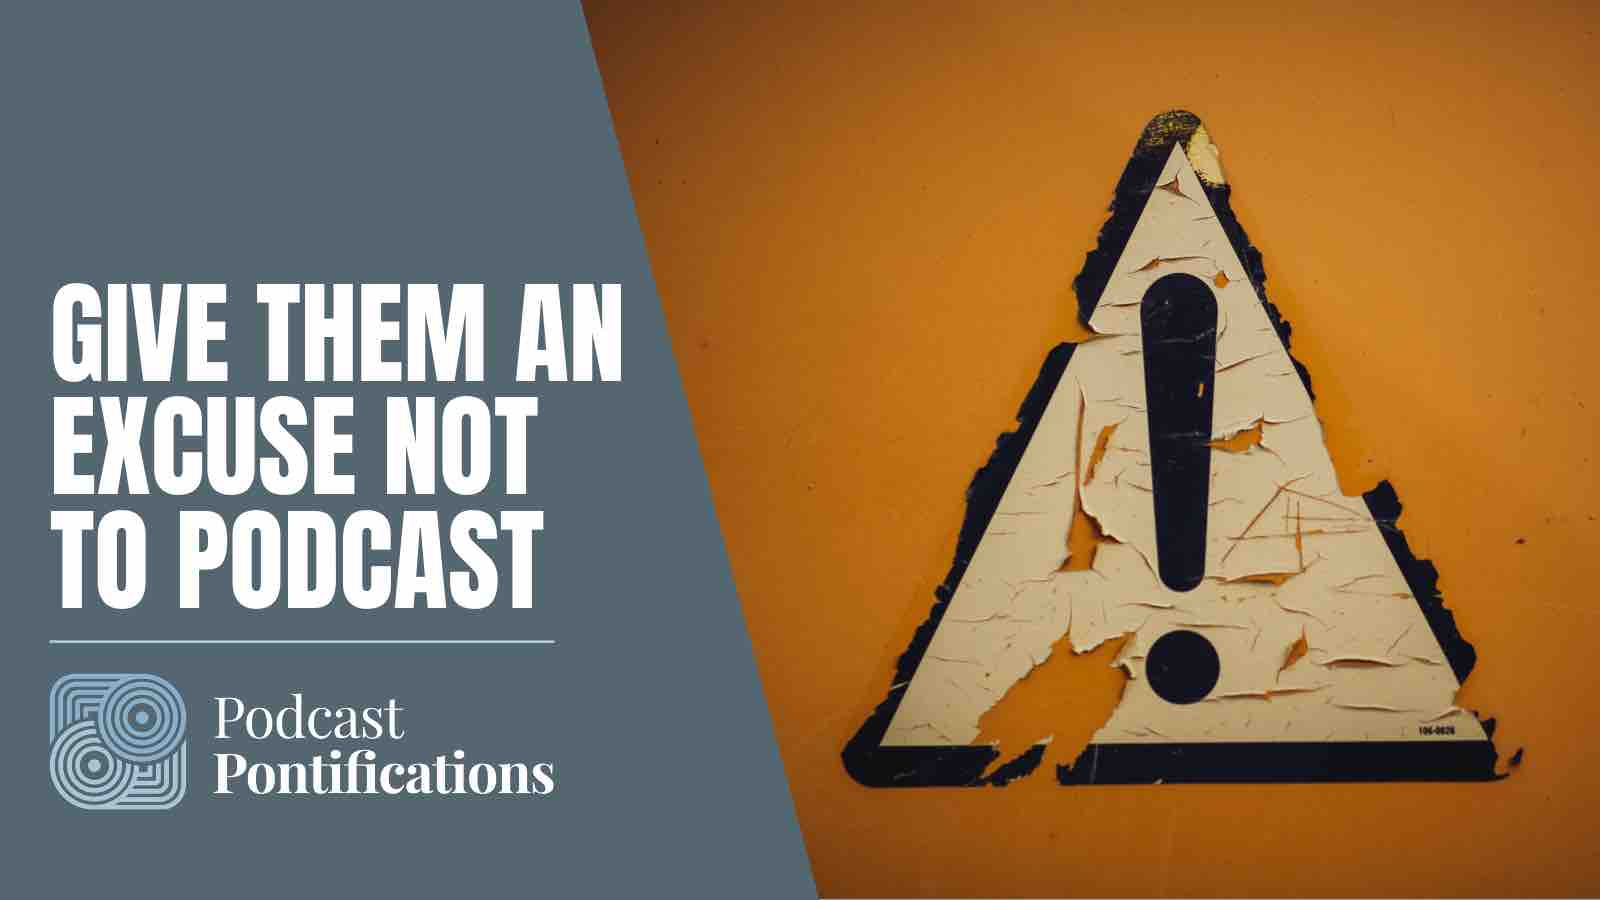 Give Them An Excuse Not To Podcast